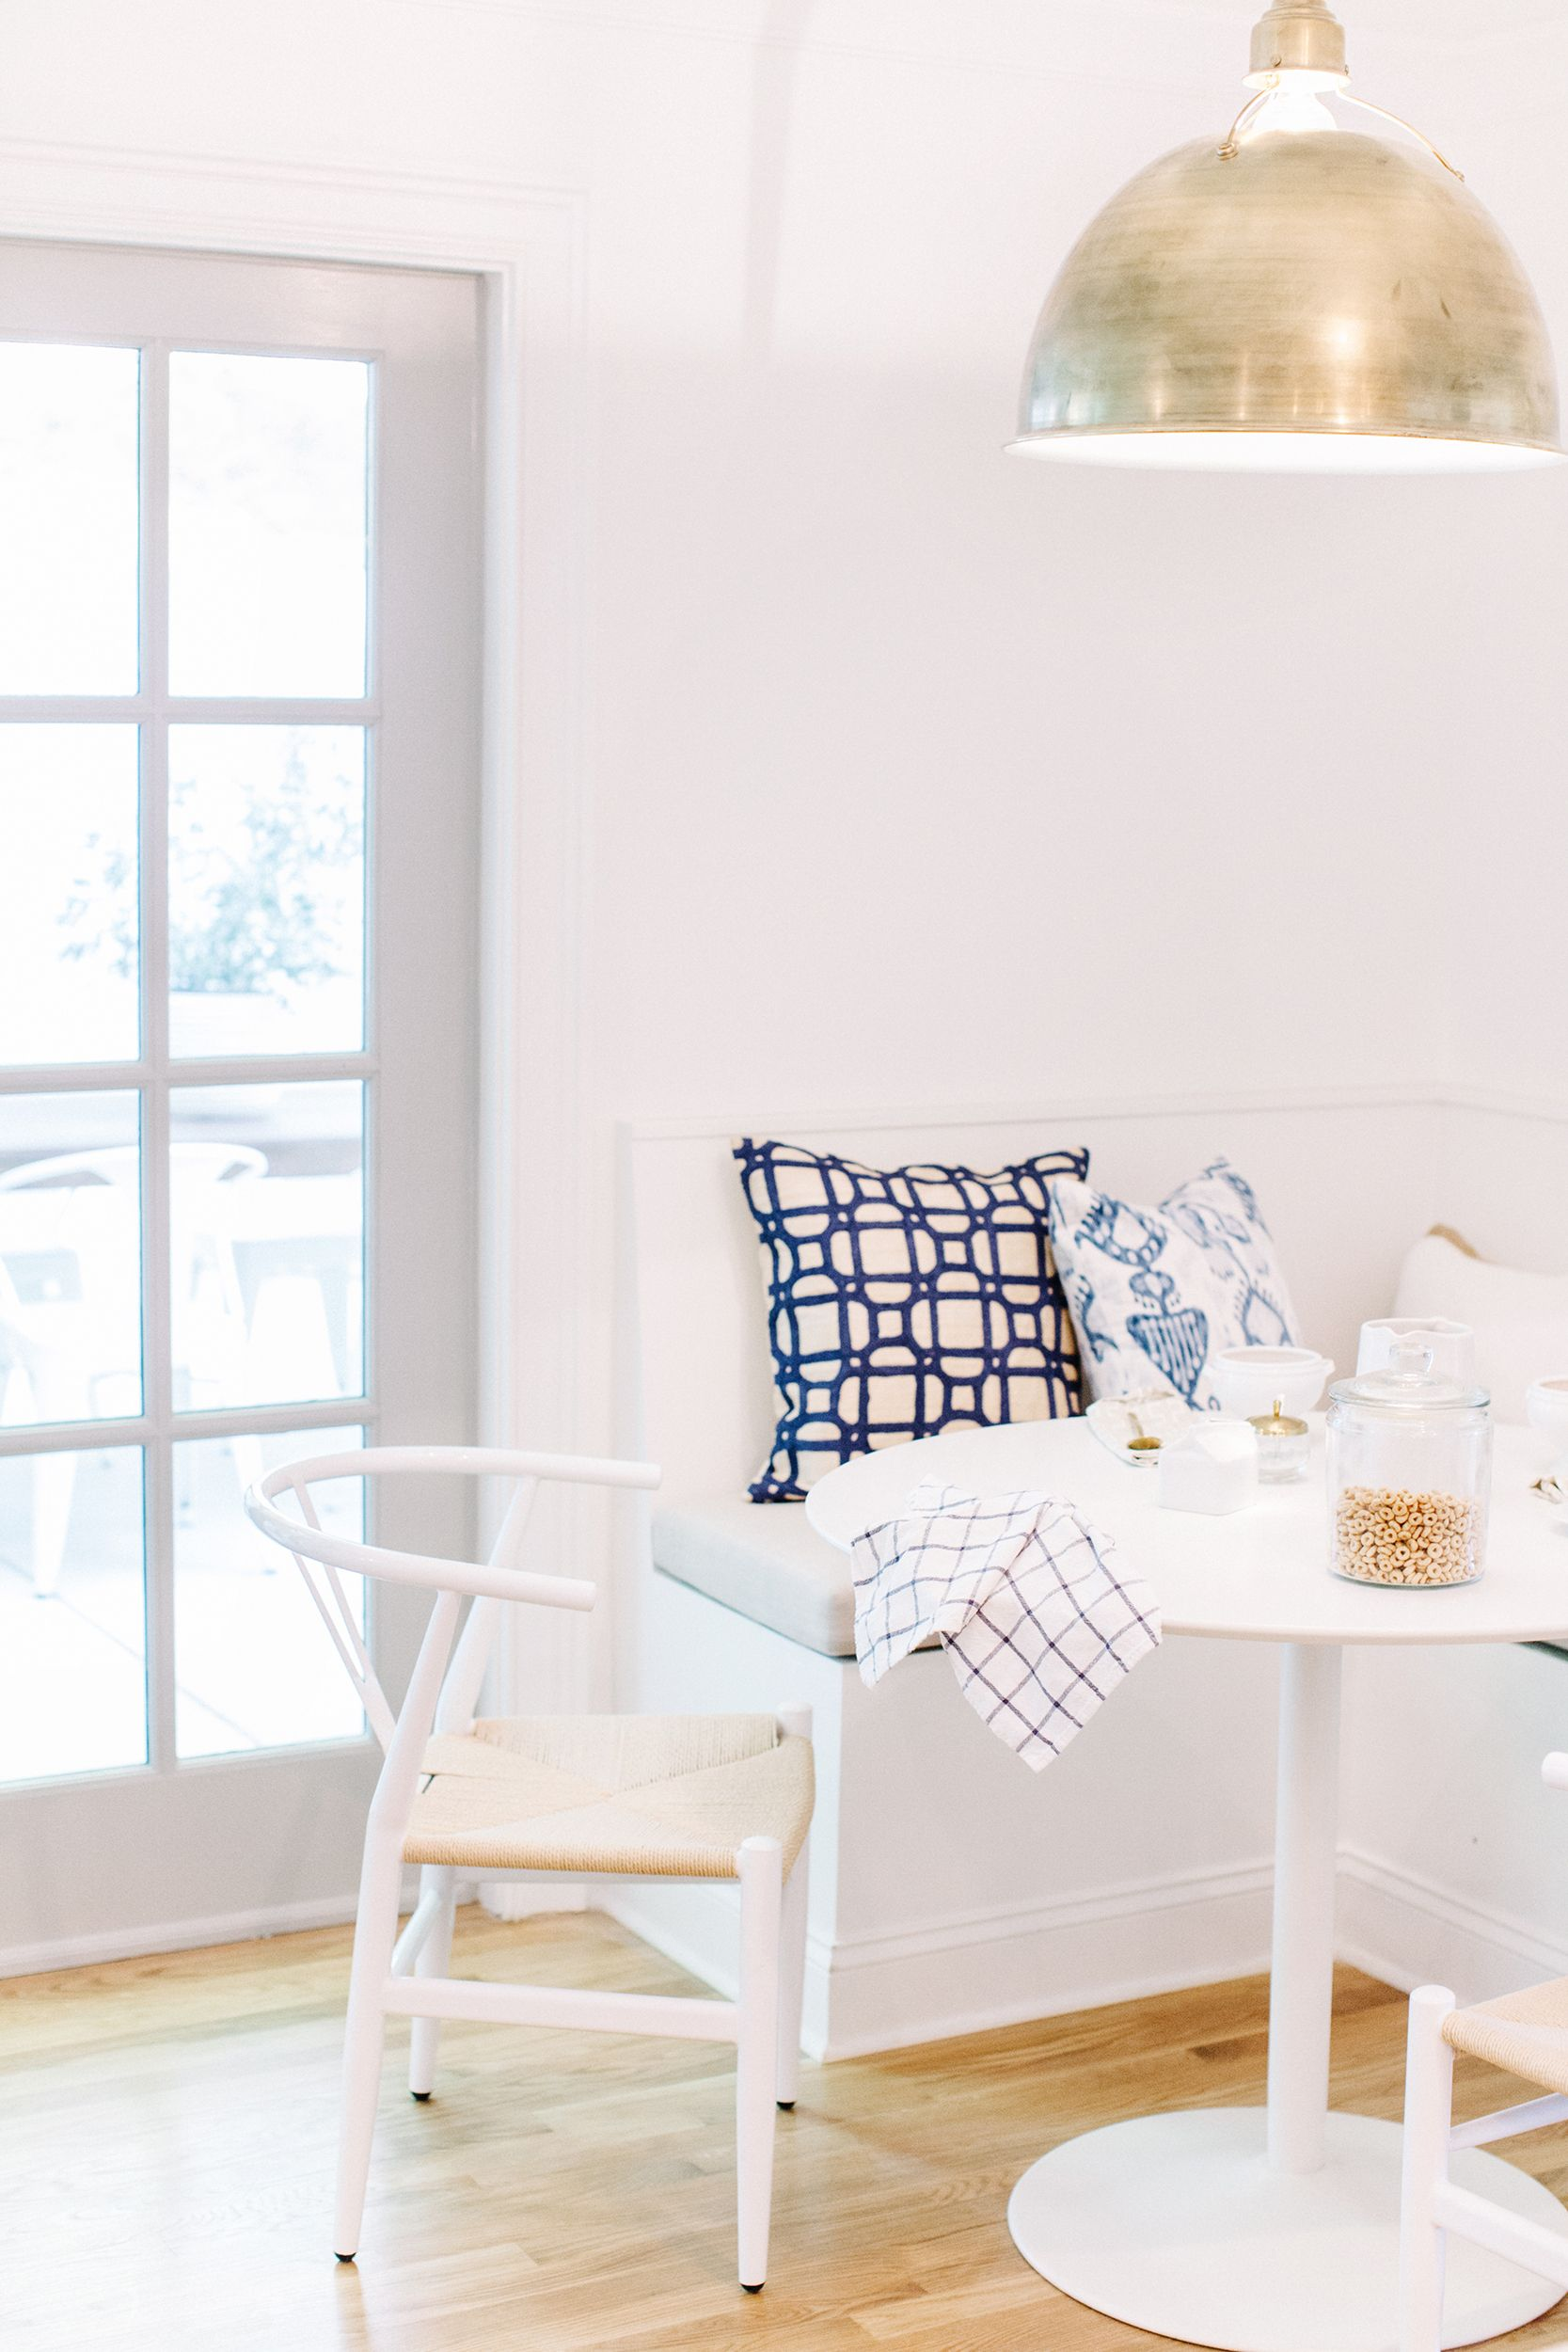 White kitchen, banquette. Breakfast nook. Design+styling by Pencil ...